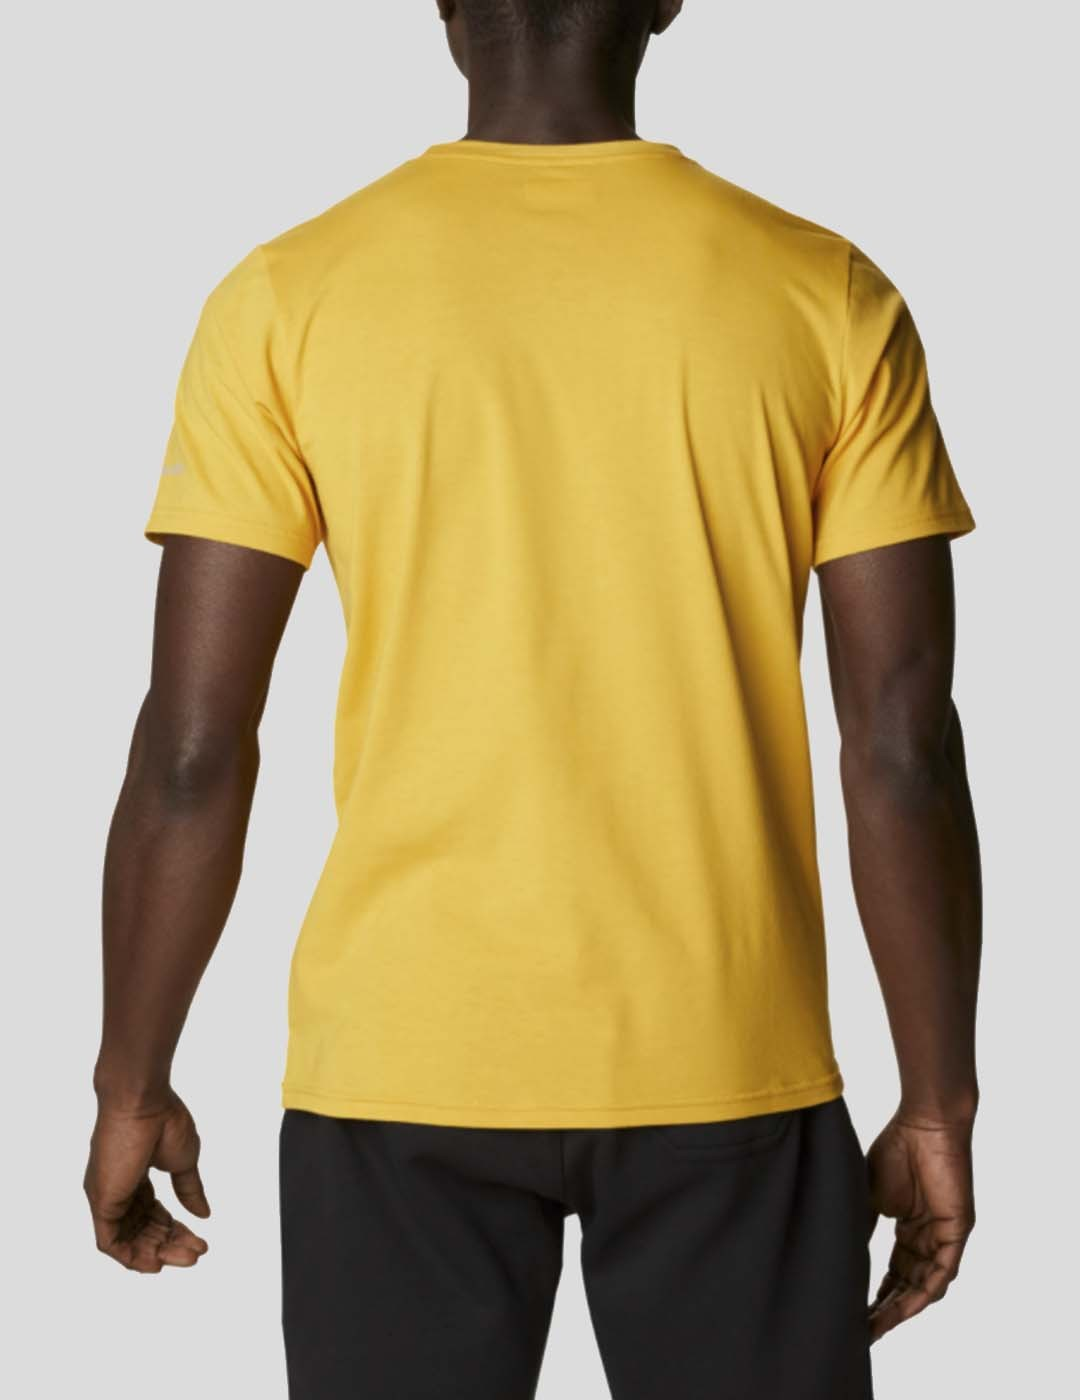 CAMISETA COLUMBIA M SUN TREK SHORT SLEEVE GRAPHIC TEE BRIGHT GOLD CAM